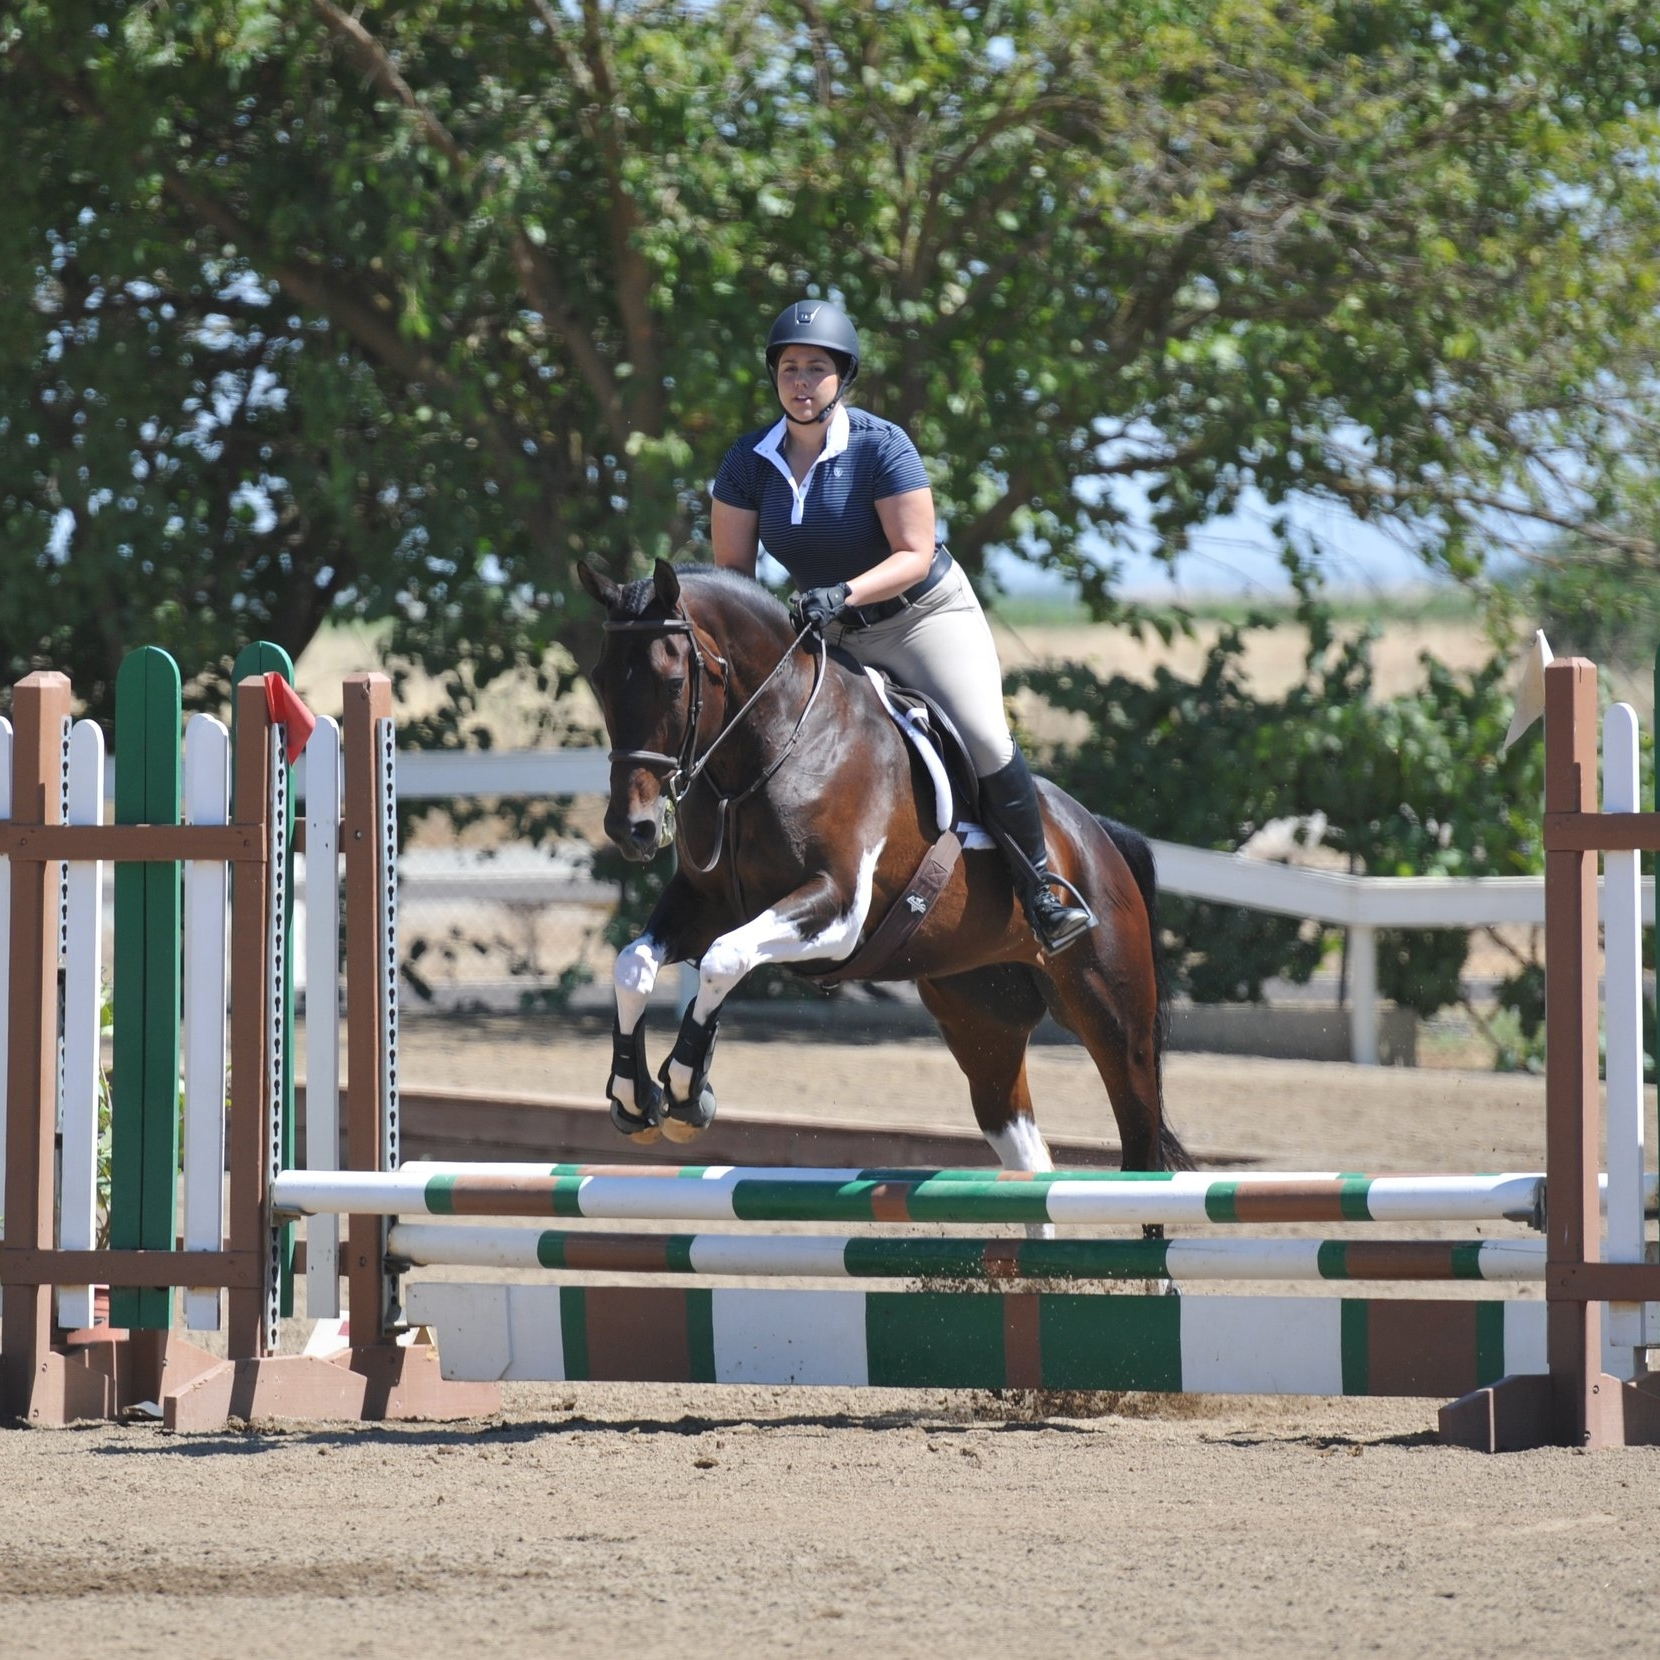 """Janelle's drive and dedication to our sport is uplifting to everyone around her.  She is not only a great rider but a wonderful horsewoman, spending as much time as she can caring for her horse """"Sophia.""""  Janelle and Sophia began their jumping career when joining Pyramid in 2015, and compete in the Hunter and Equitation rings. With much success in just the last year, we see many victories in their future in the Jumper ring also.  Janelle makes everyones life run smoother at Pyramid through scheduling and organization."""